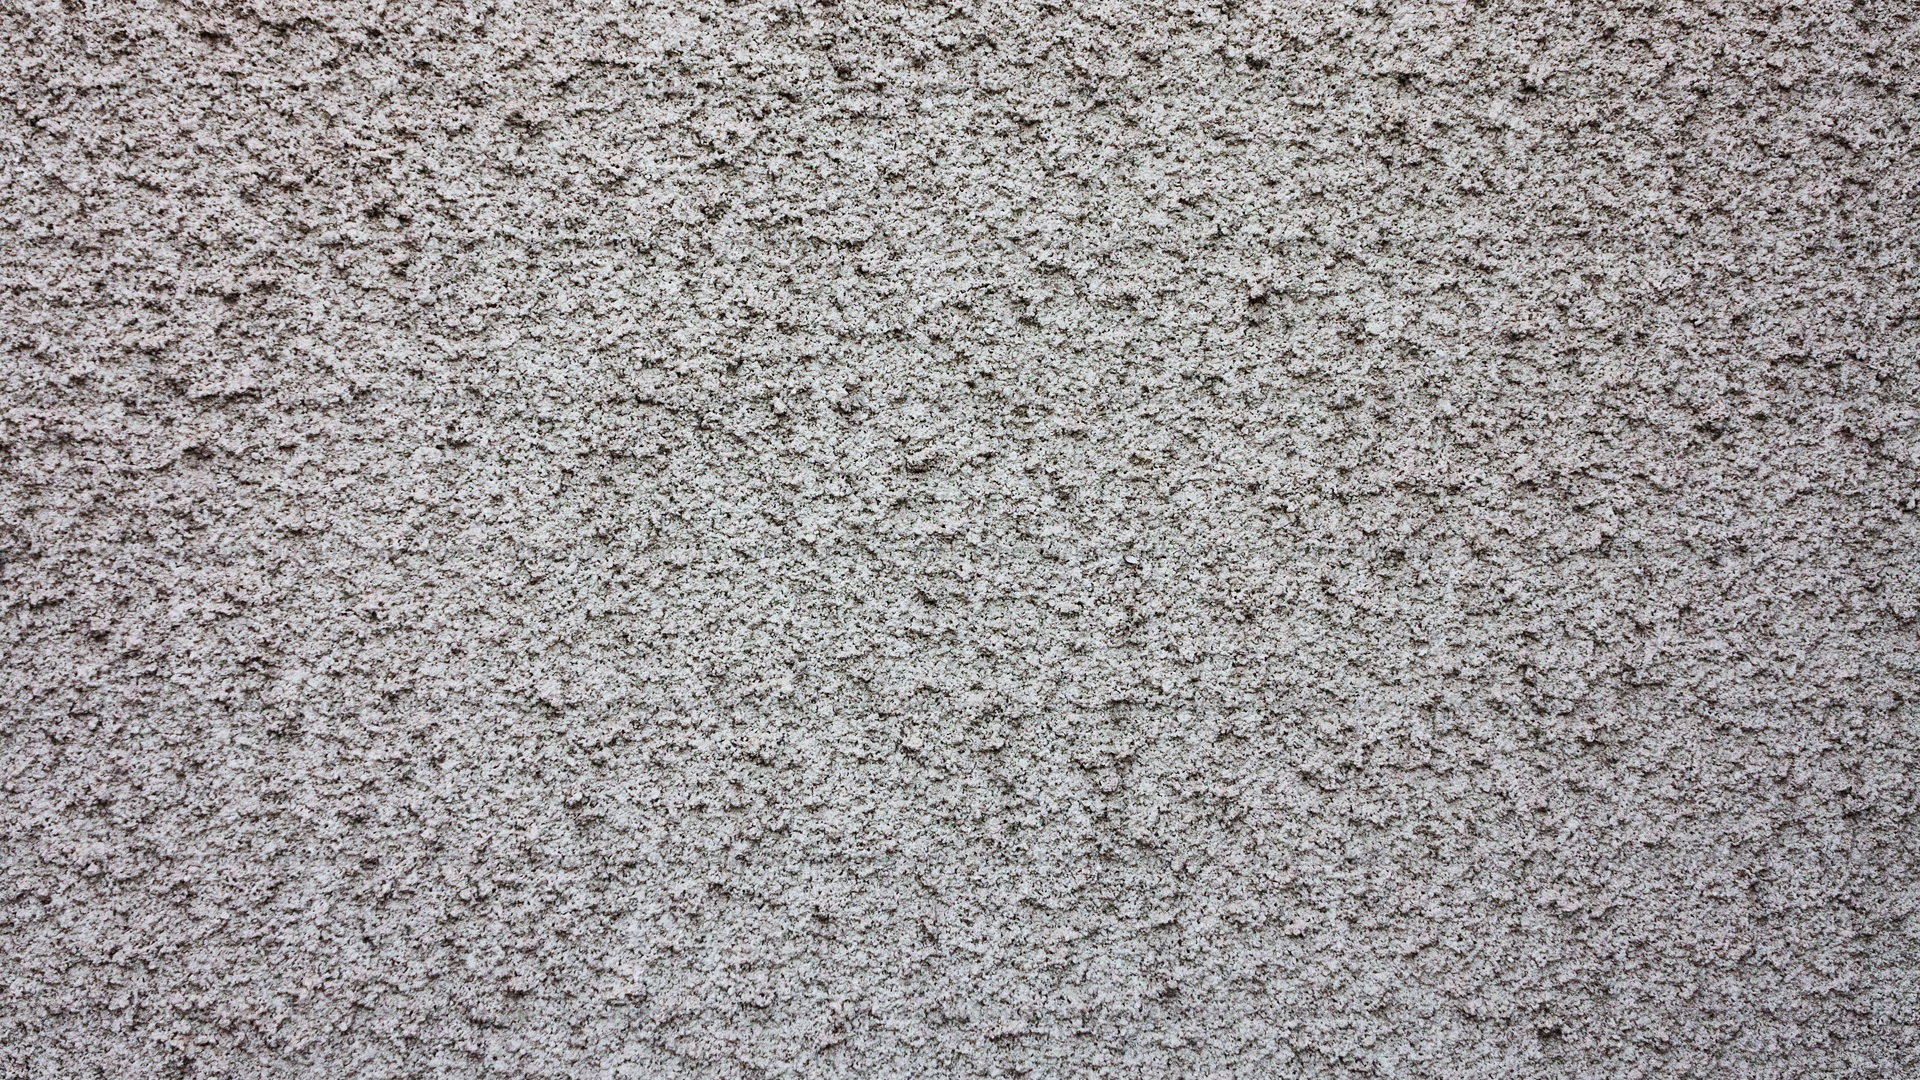 Gray Concrete Wall Texture HD 1920 x 1080p